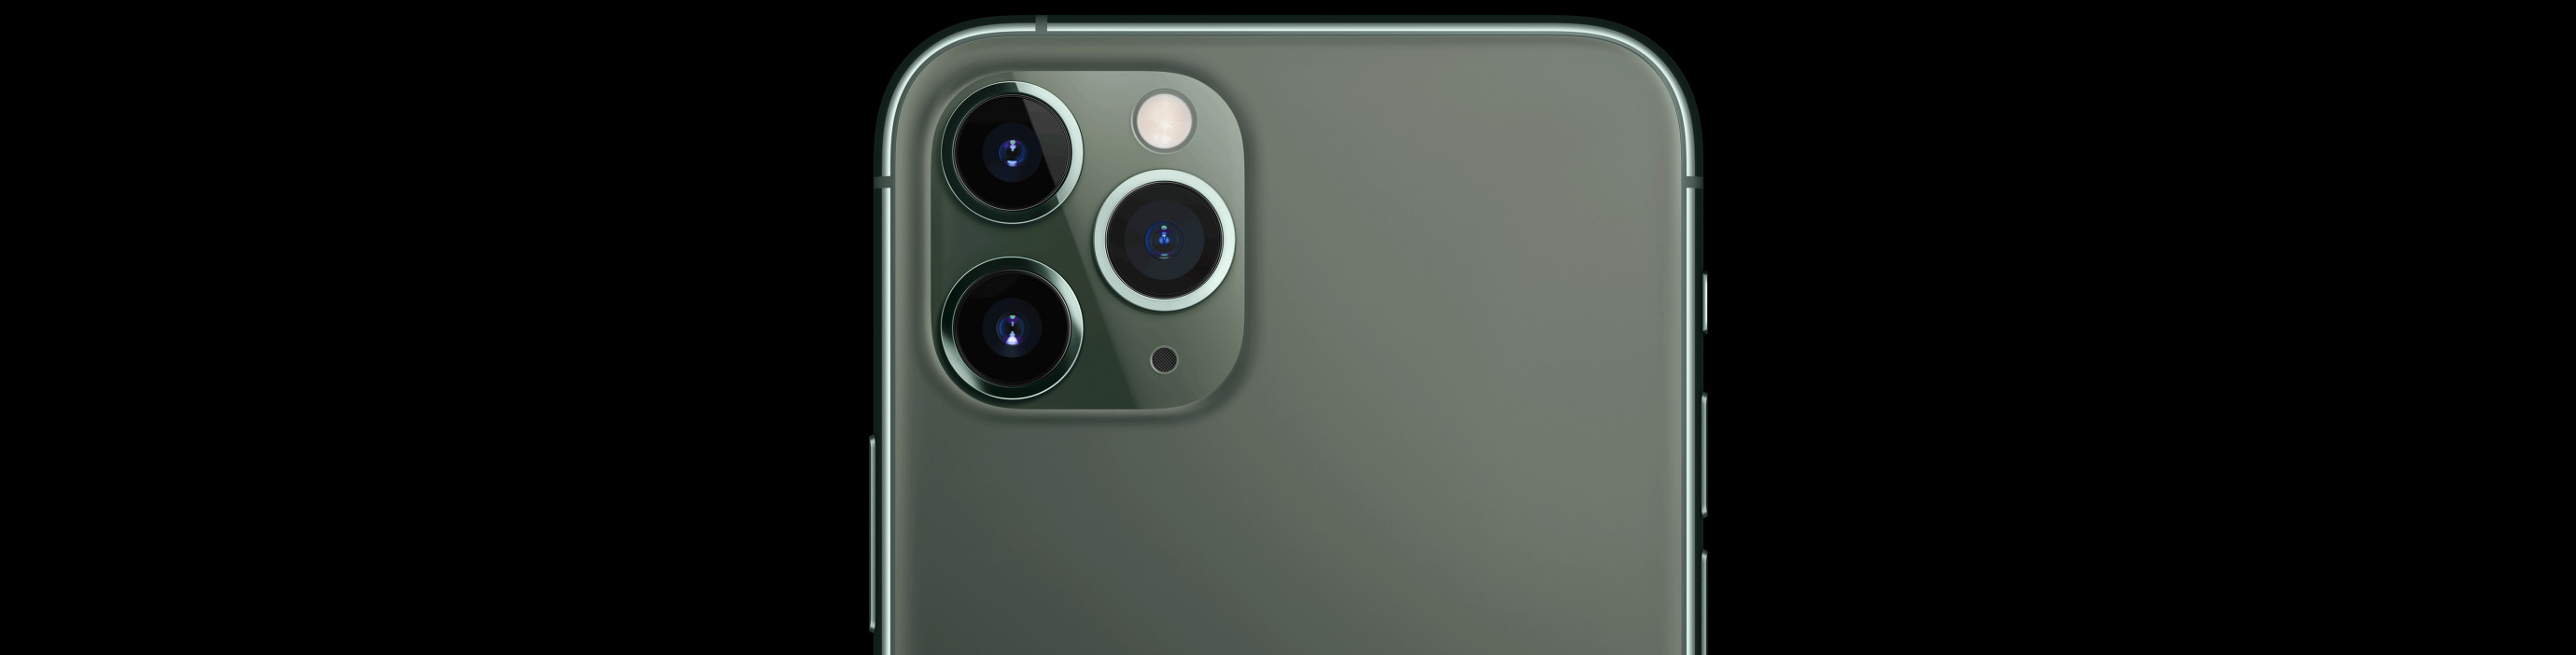 iPhone11-productpage-extra_03.jpg